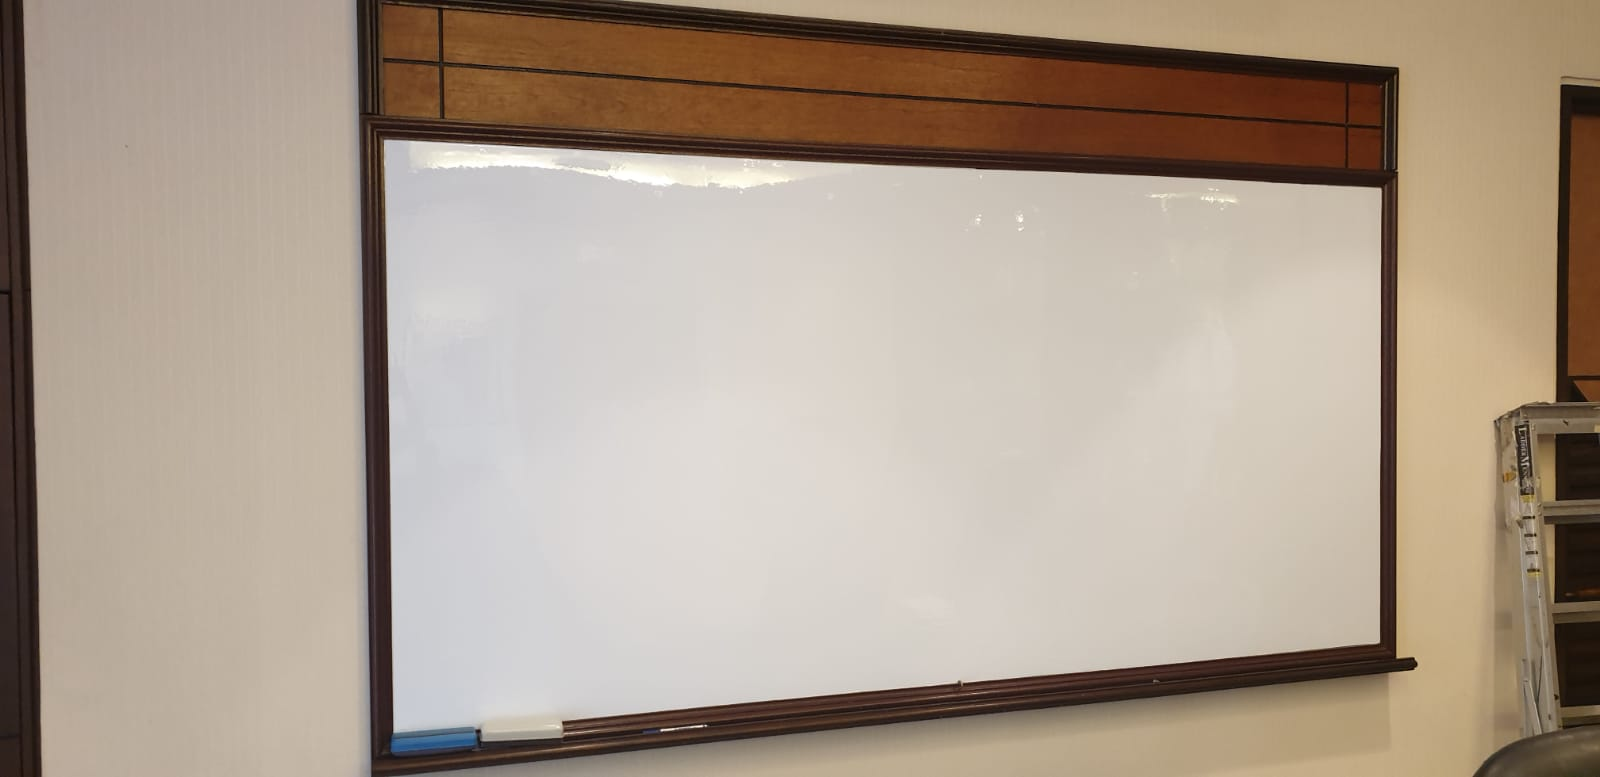 Conversion of traditional whiteboard to GD Magnetic Whiteboard